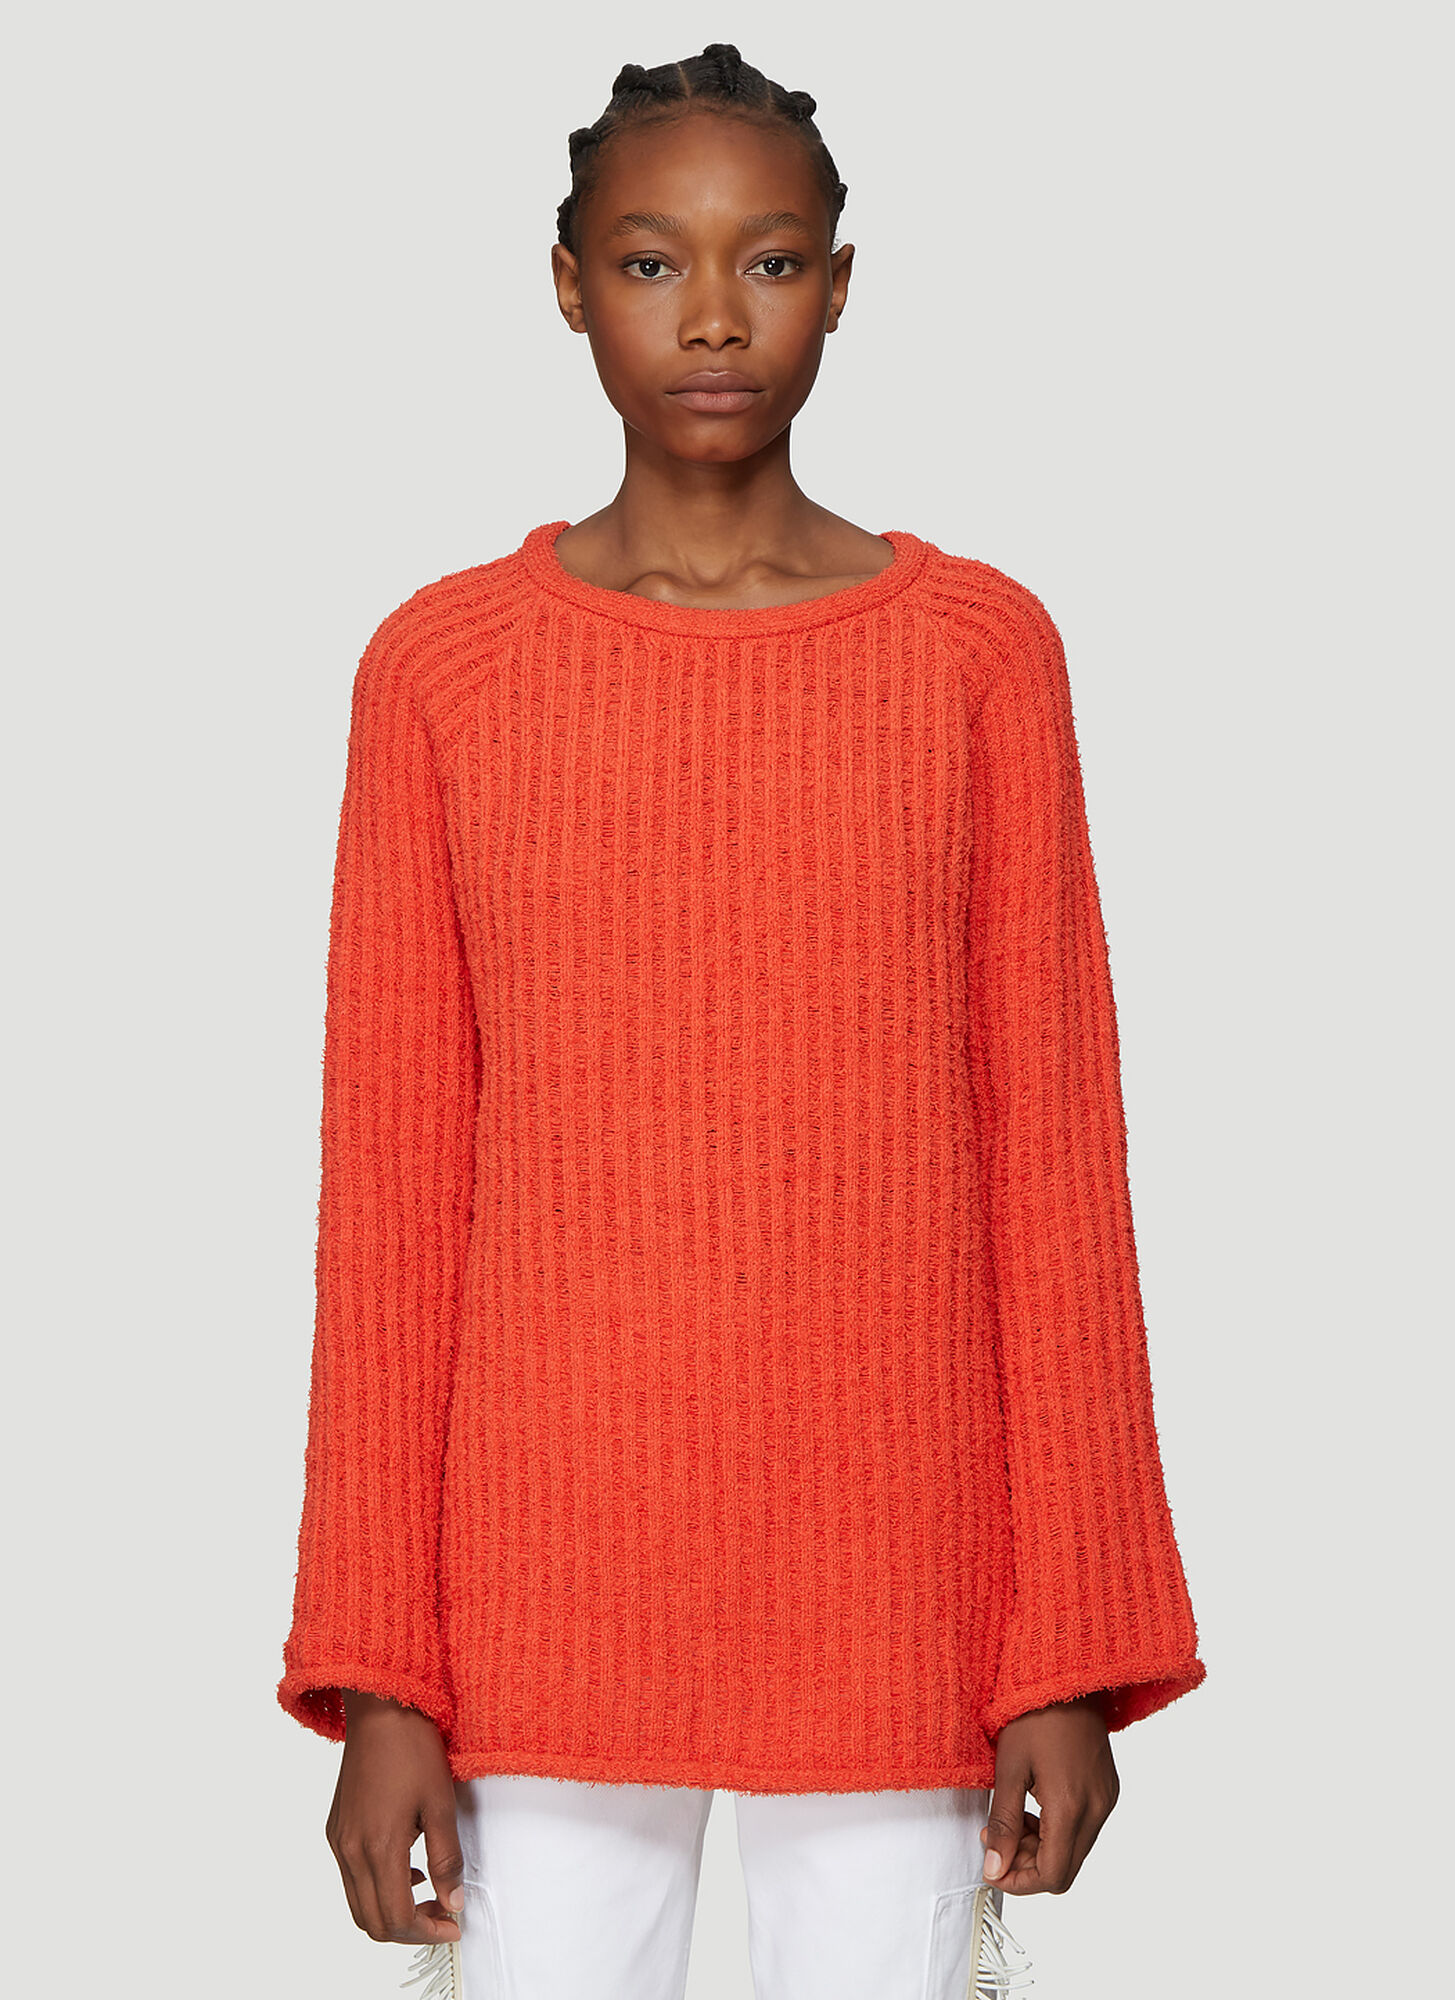 Photo of Eckhaus Latta Referee Knit Sweater in Orange - Eckhaus Latta Knitwear